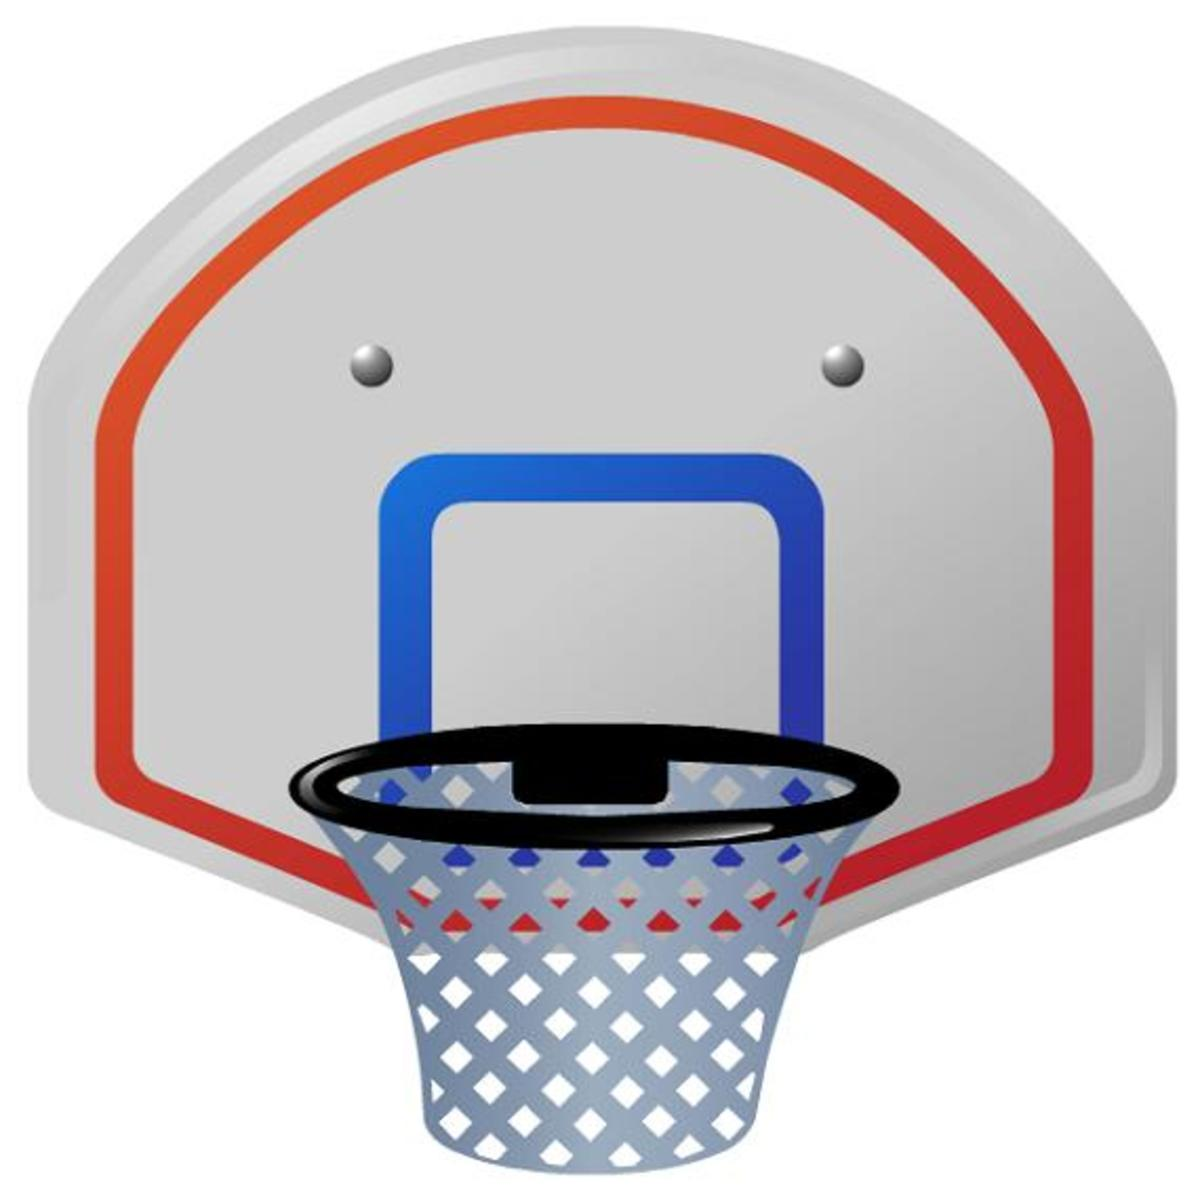 Free Basketball Clipart